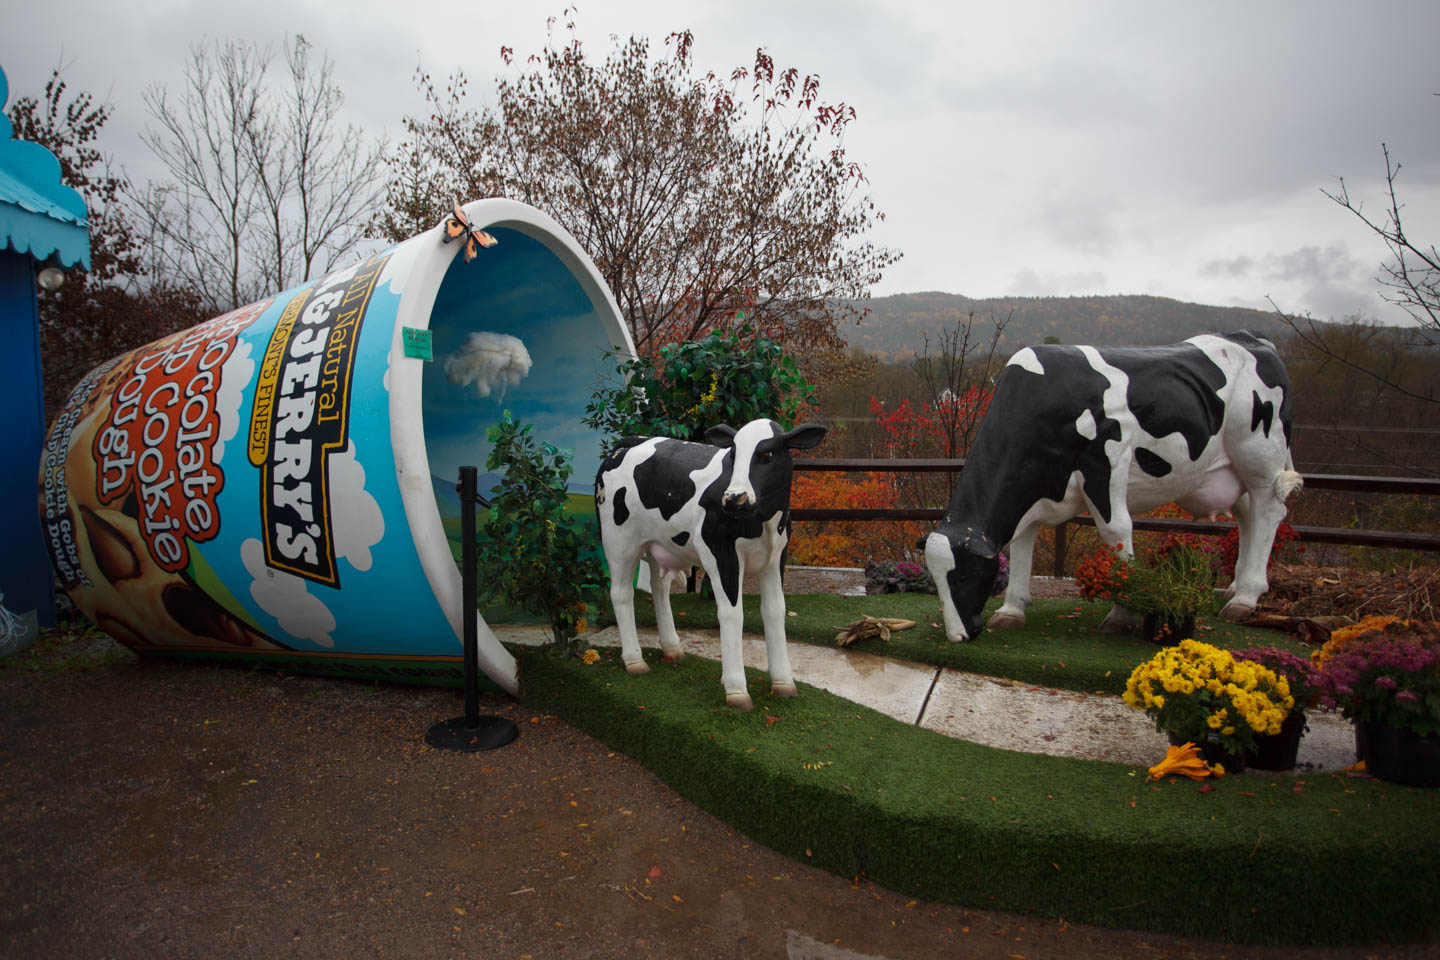 Ben & Jerry Factory